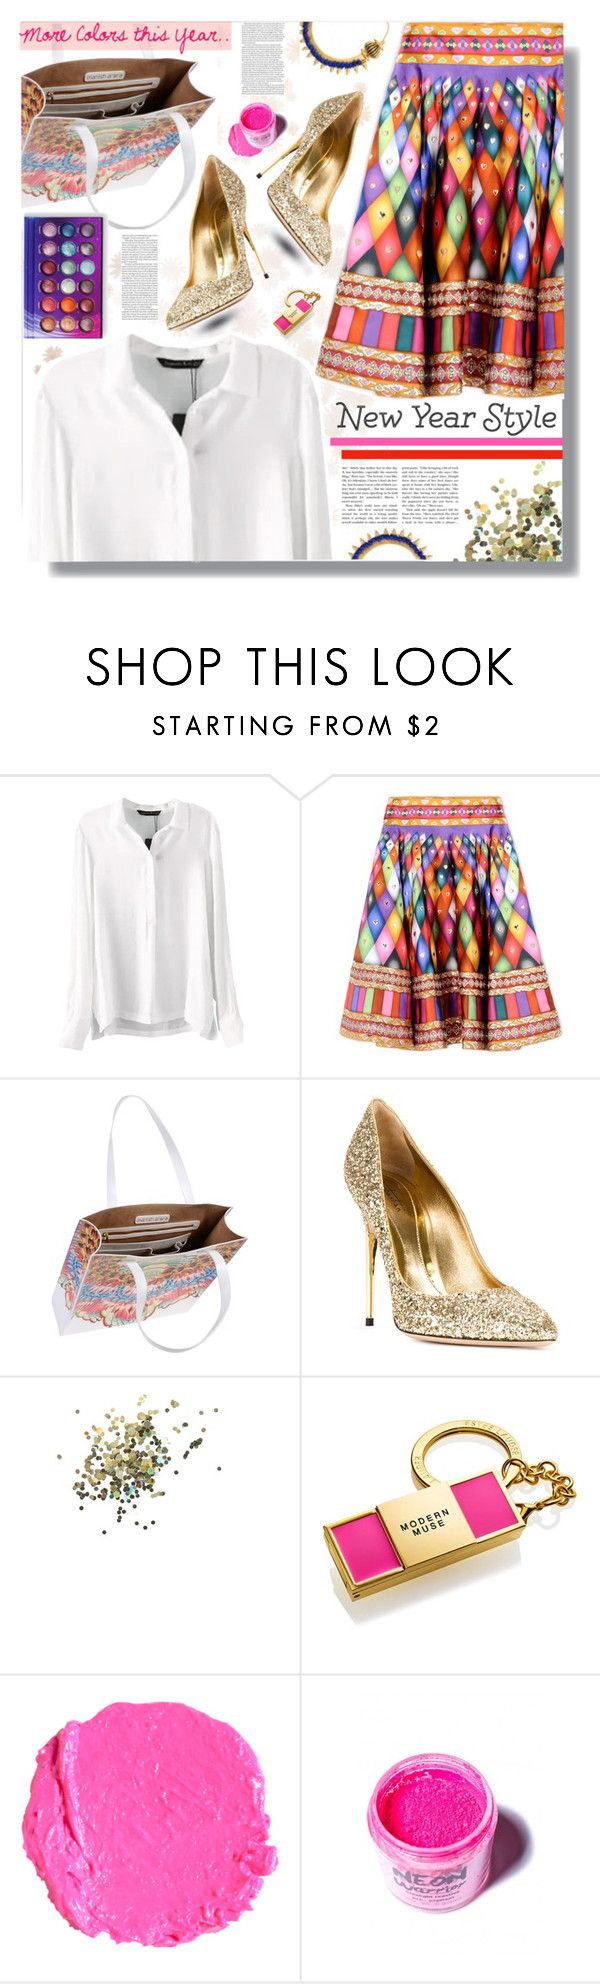 """""""New Year's Style Resolution"""" by prigaut ❤ liked on Polyvore featuring Manish Arora, ASOS, Sebastian Milano, Topshop, Estée Lauder, Medusa's Makeup, women's clothing, women's fashion, women and female"""